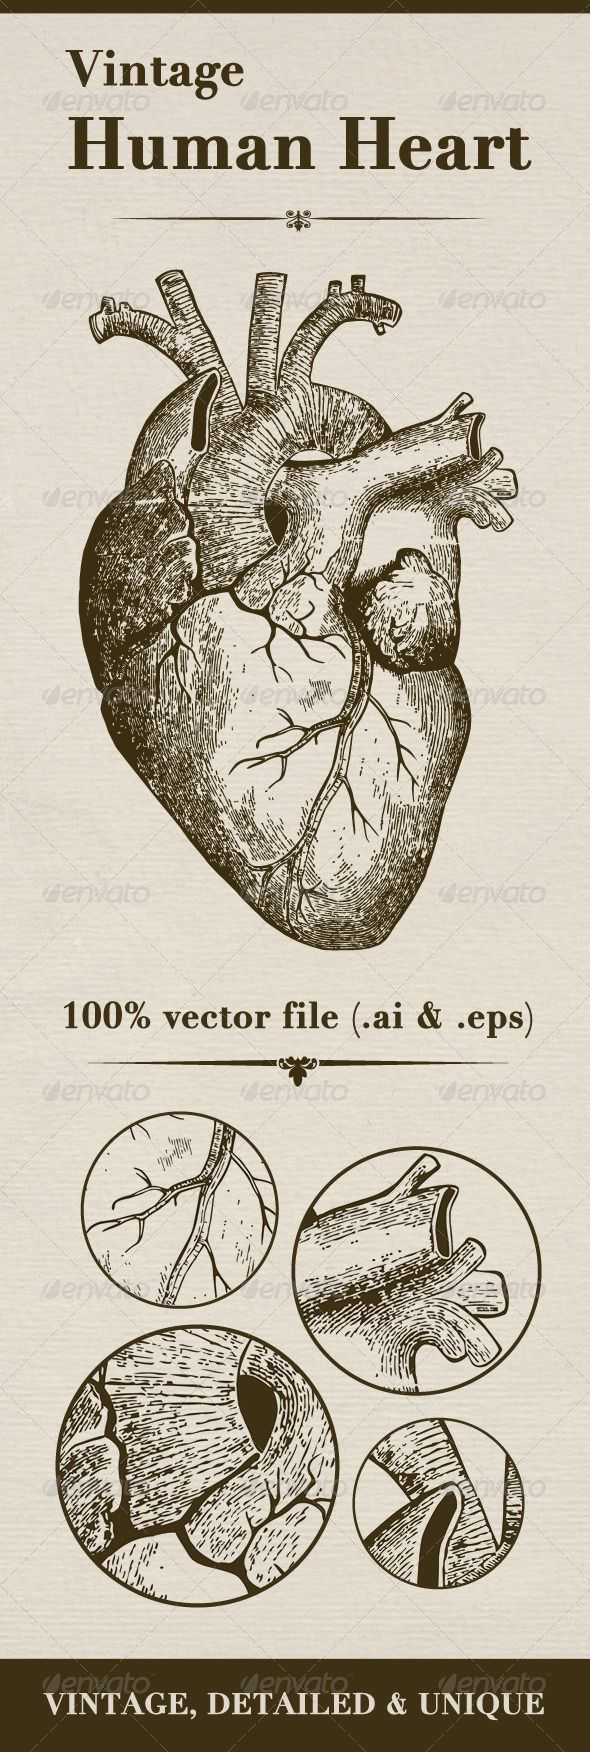 Vintage Human Heart #GraphicRiver I present You vintage vector human heart. Not some cartoon love symbol, but real organ of human body in XIX century medical textbook drawing style. Unique and vintage detailed look. Pack containd .ai & .eps + help file Download, rate & enjoy! Created: 11November13 GraphicsFilesIncluded: VectorEPS #AIIllustrator Layered: No MinimumAdobeCSVersion: CS Tags: blood #body #decorative #doctor #drawing #heart #human #lines #love #man #medical #medicine #natural #old…